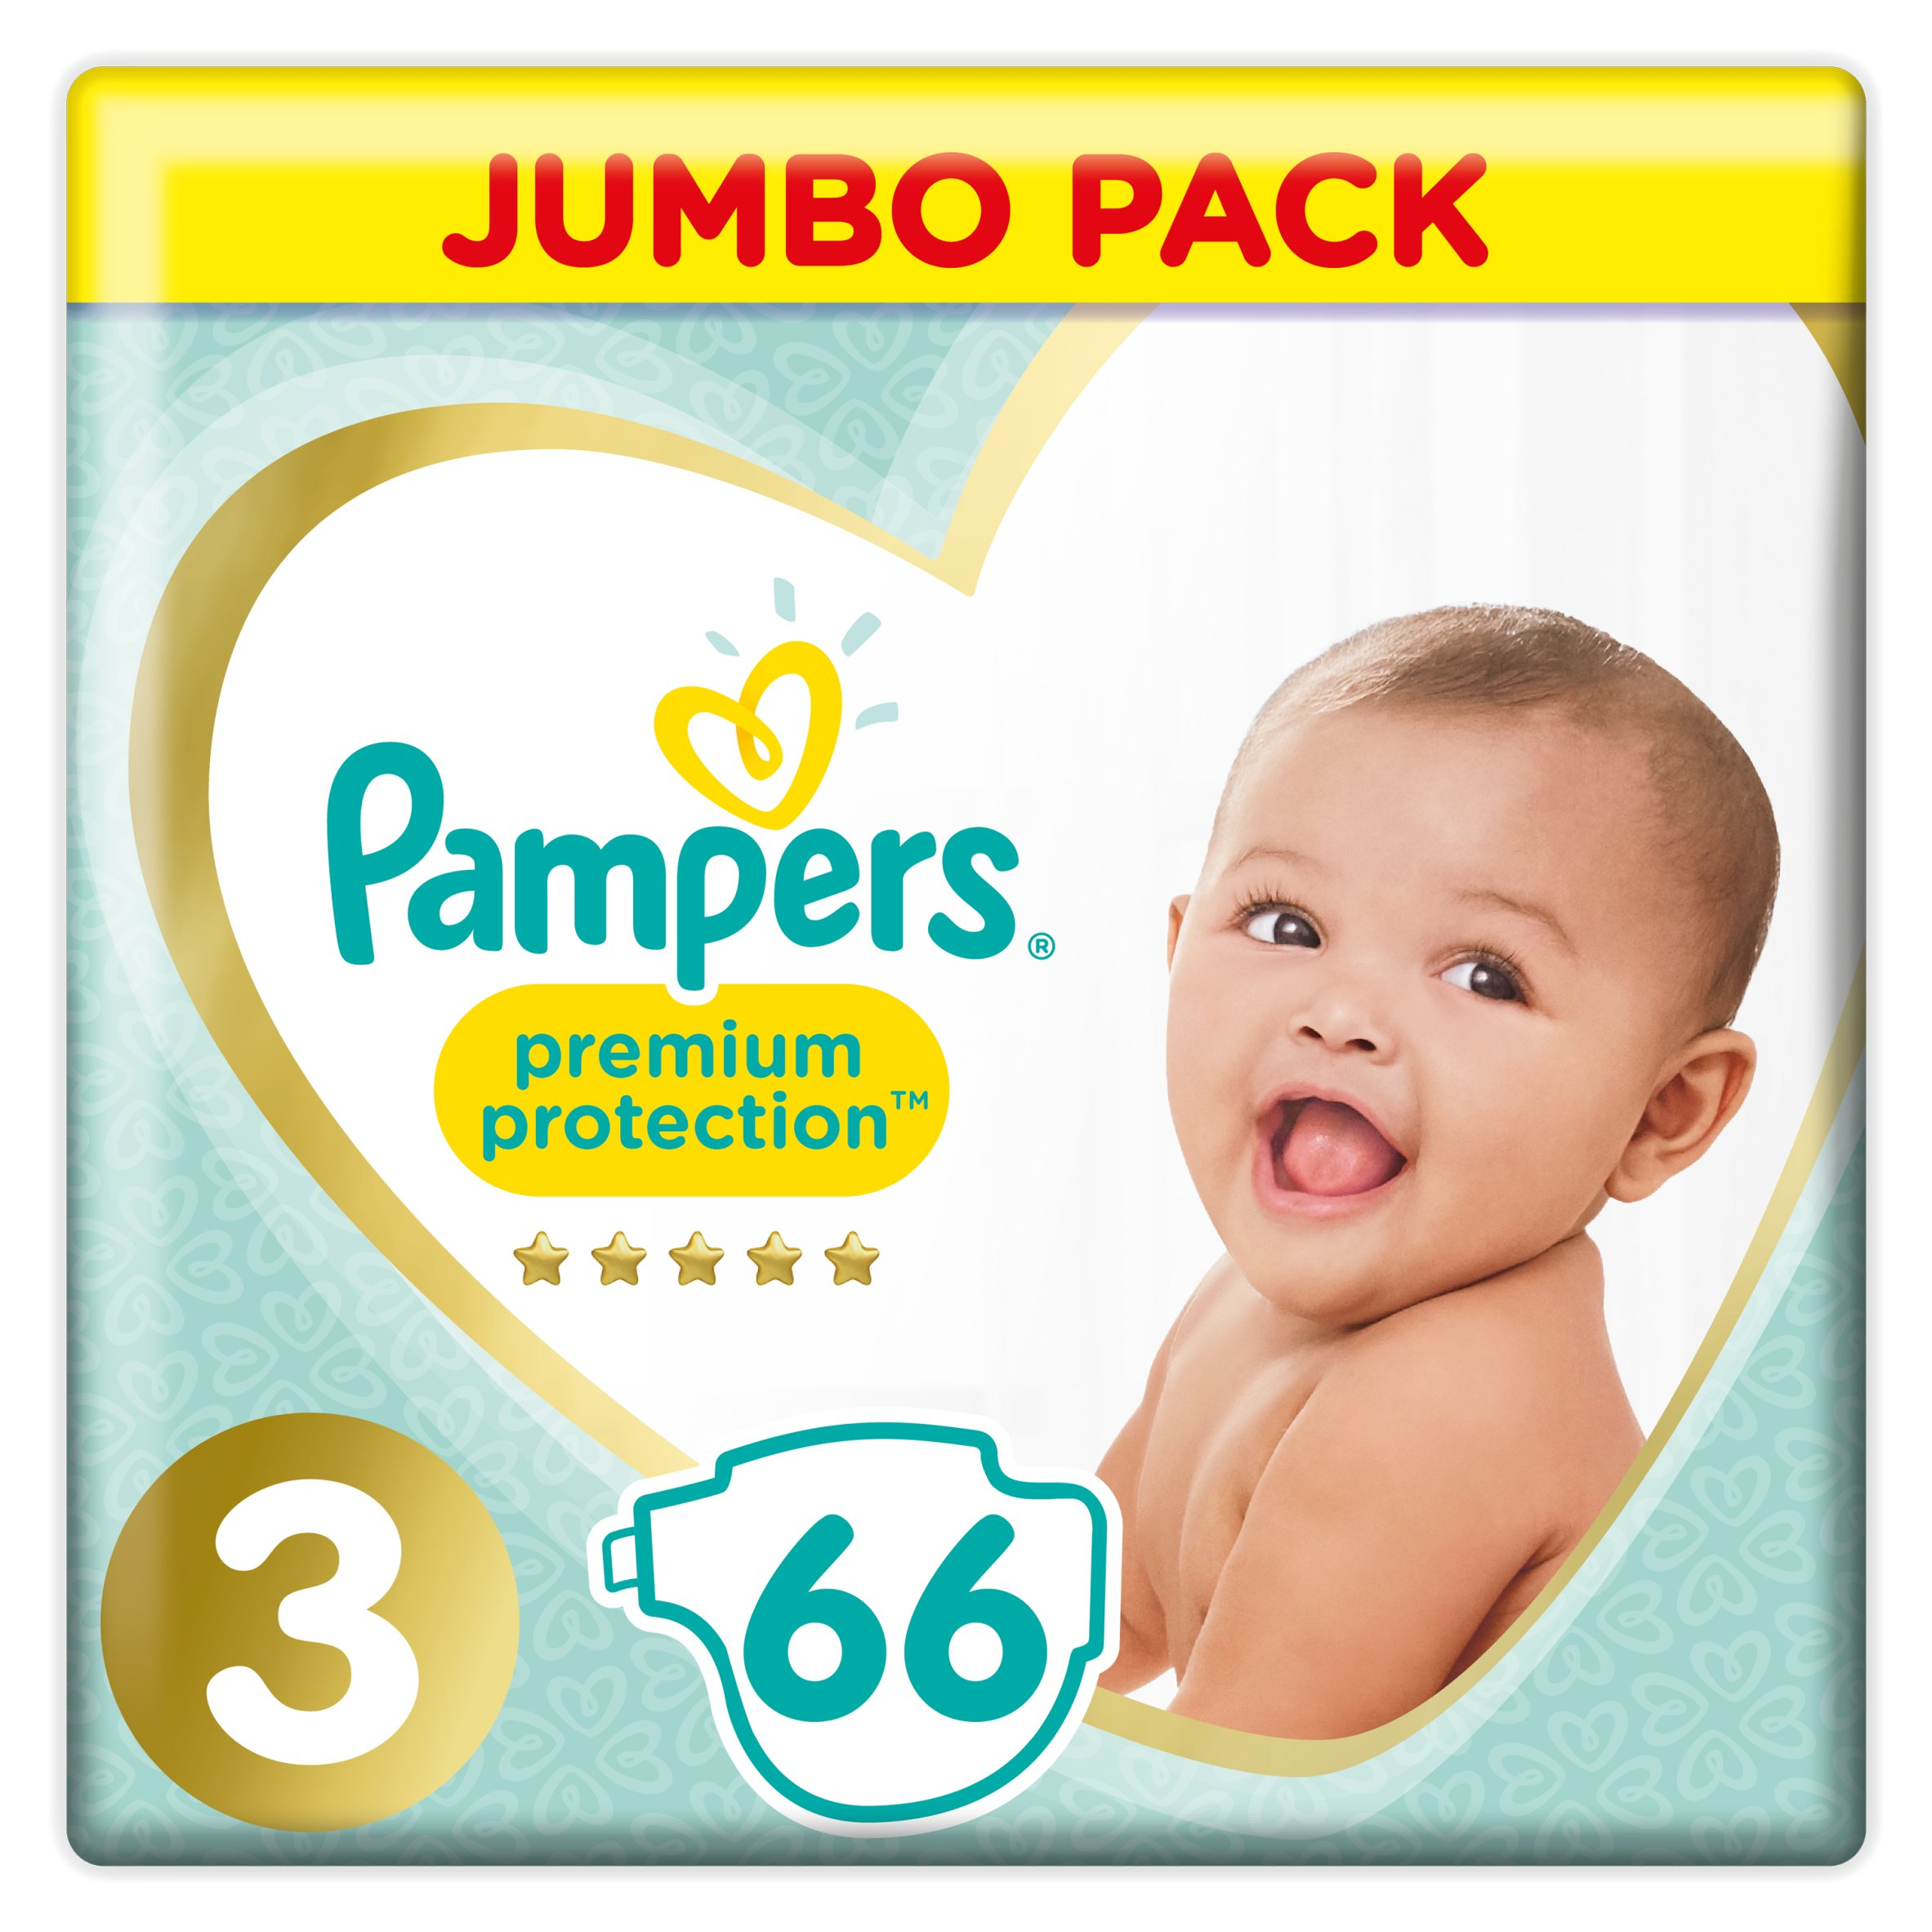 Pampers New Baby Size 3 Jumbo Pack 66